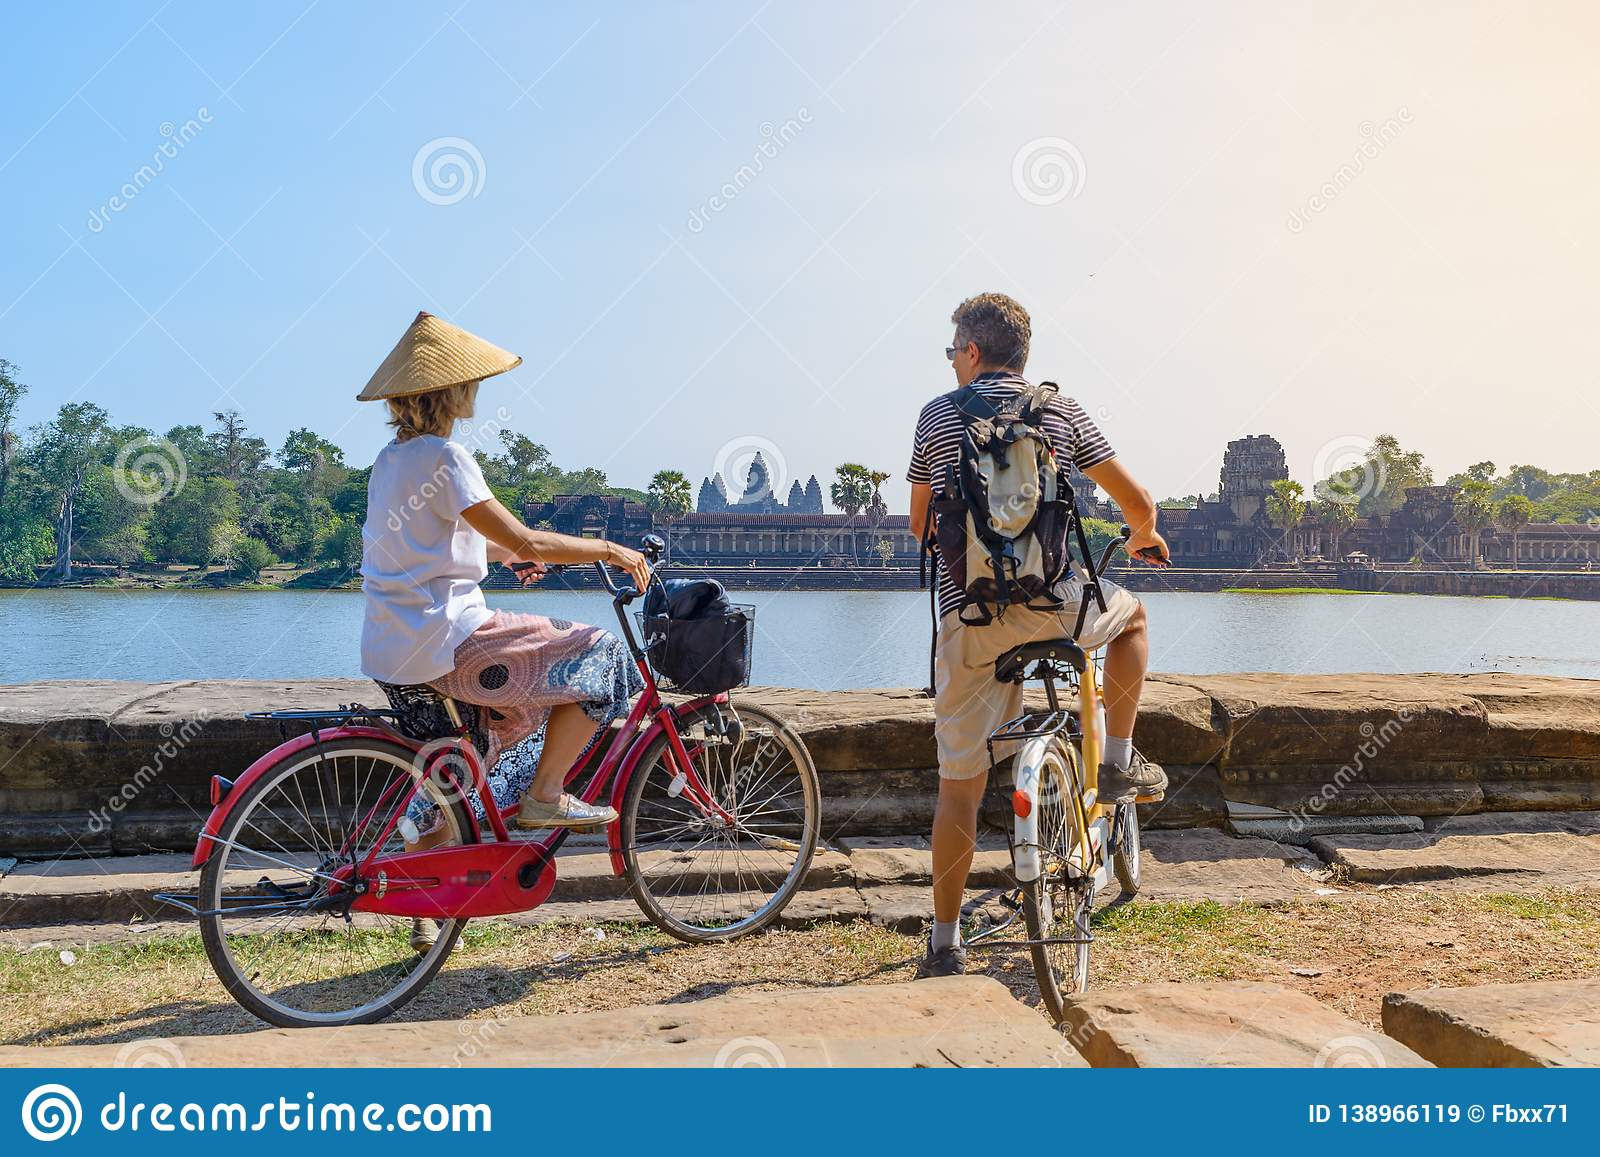 Tourist couple cycling in Angkor temple, Cambodia. Angkor Wat main facade reflected on water pond. Eco friendly tourism traveling